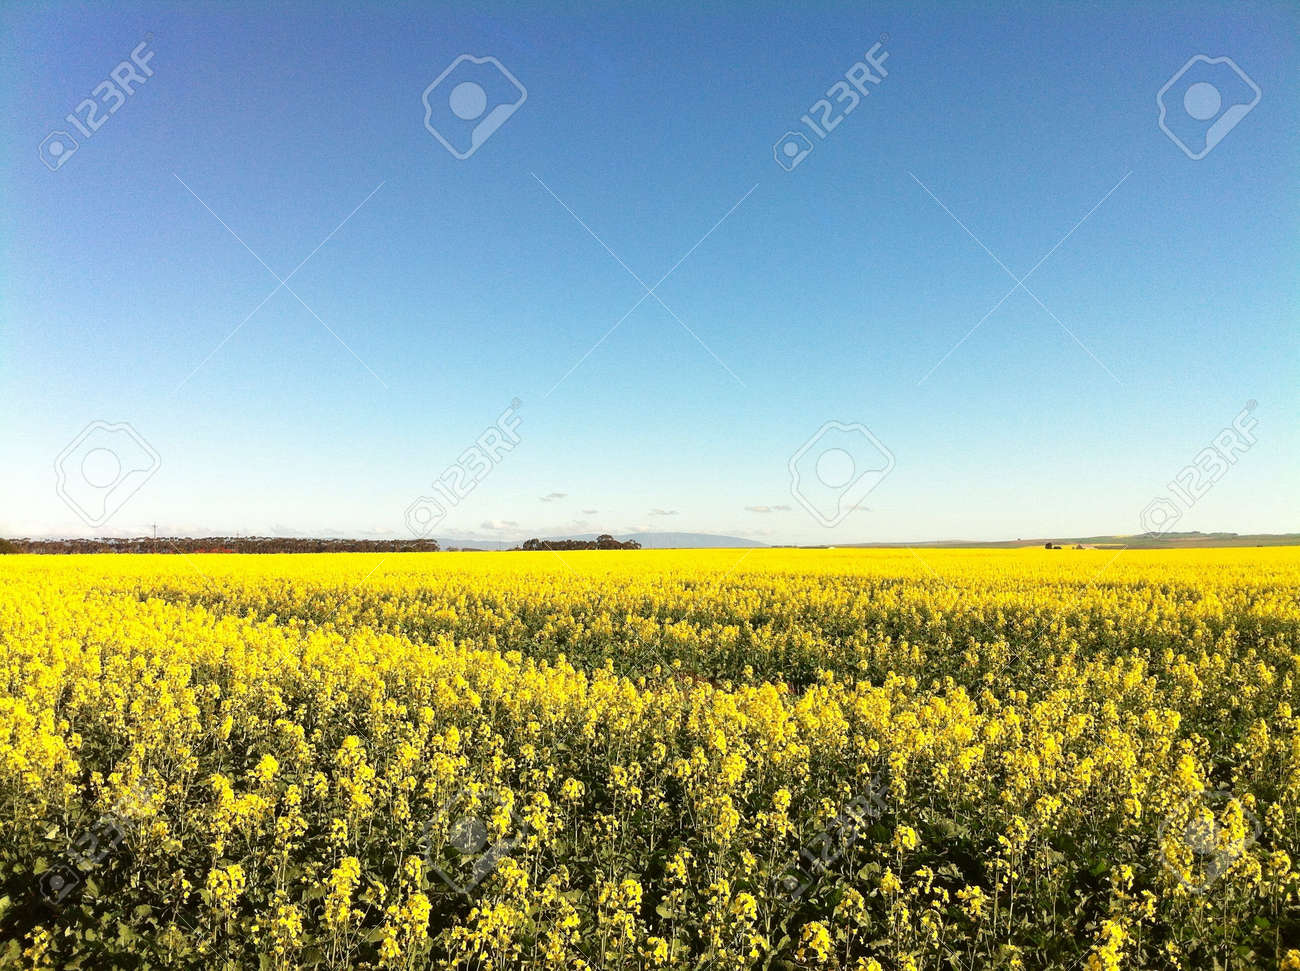 Farmlands Covered In Stunning Yellow Canola Flowers With A Blue